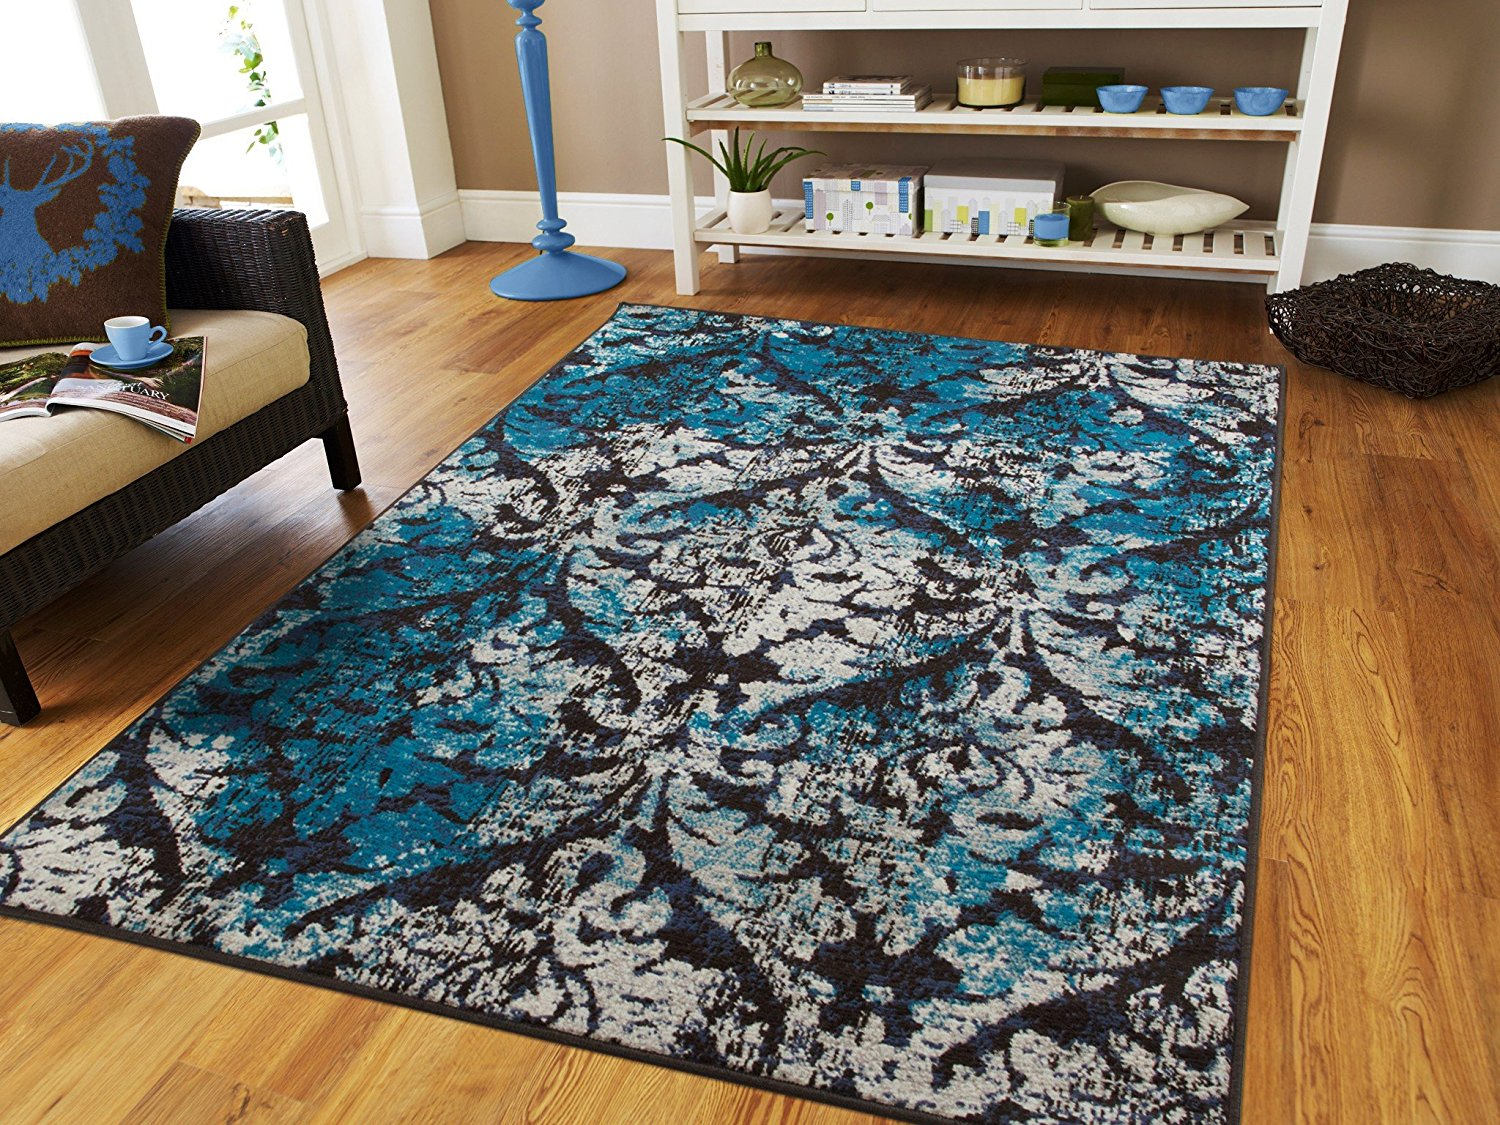 luxury modern area rugs on clearance 5x8 distressed rugs 5x7 rug for dining room blue black - 5x7 Rugs